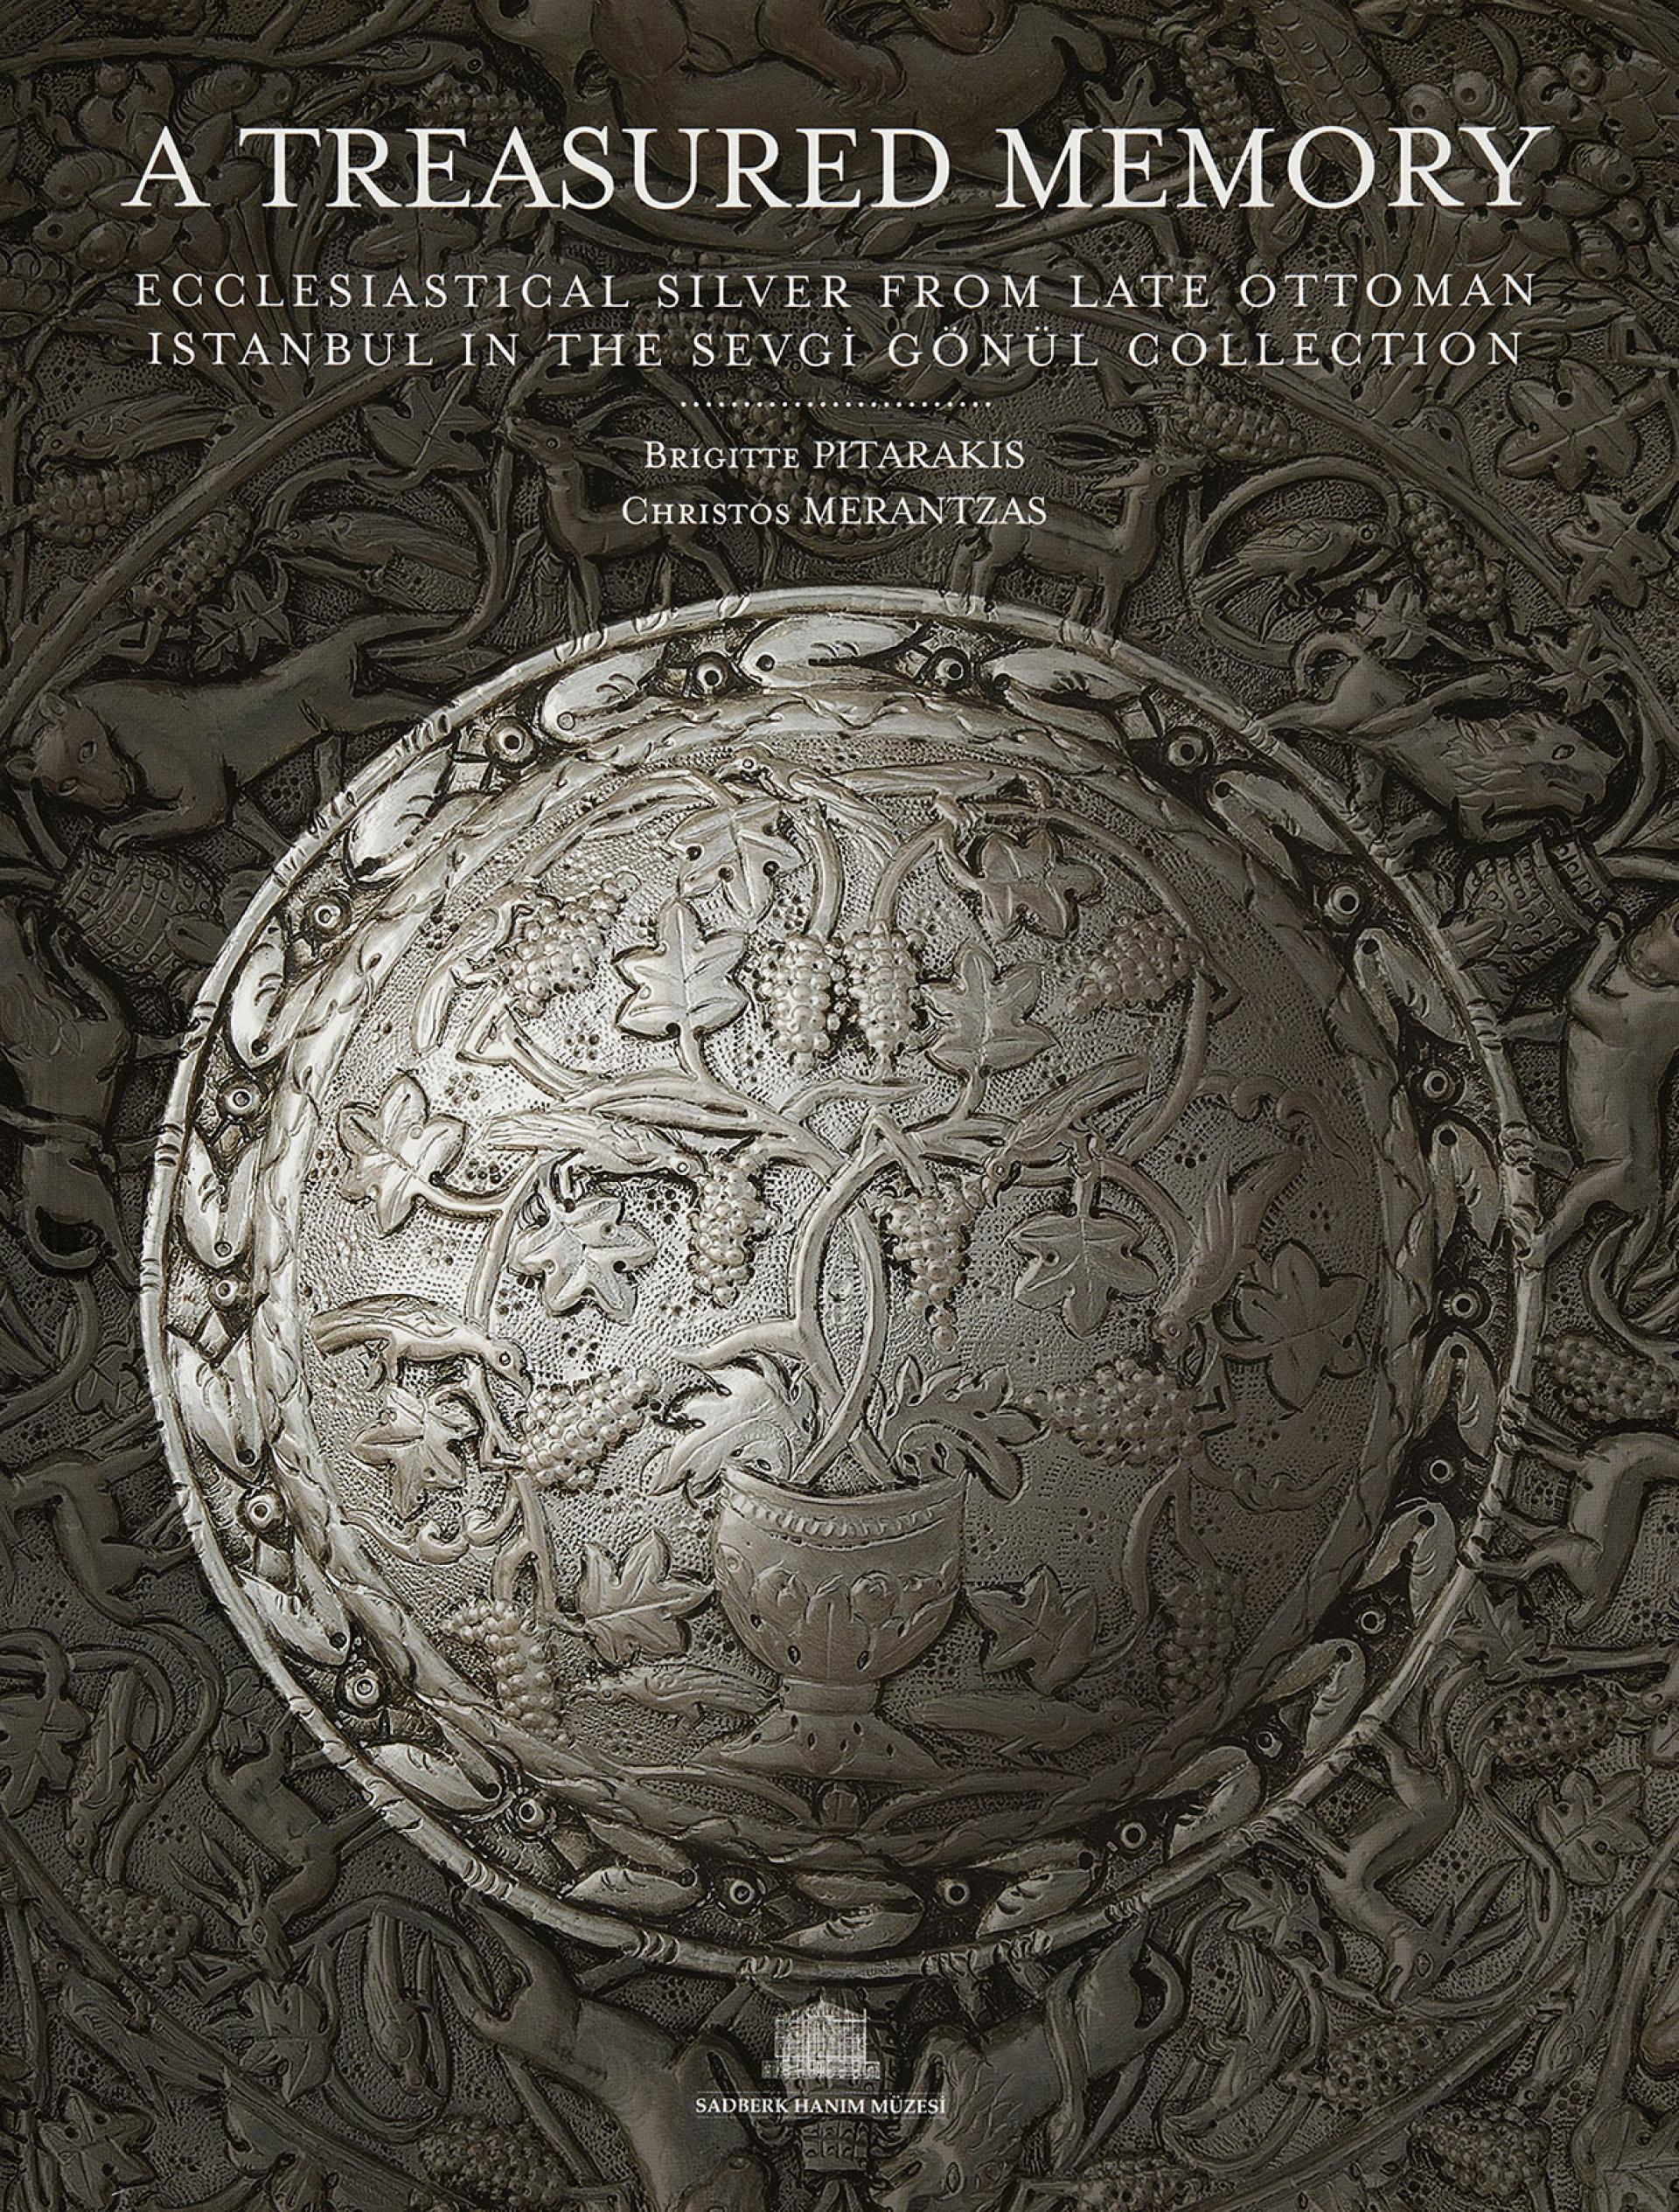 A Treasured Memory Ecclesiastical Silver From Late Ottoman Istanbul in the Sevgi Gönül Collection - BOOKS - Sadberk Hanım Museum